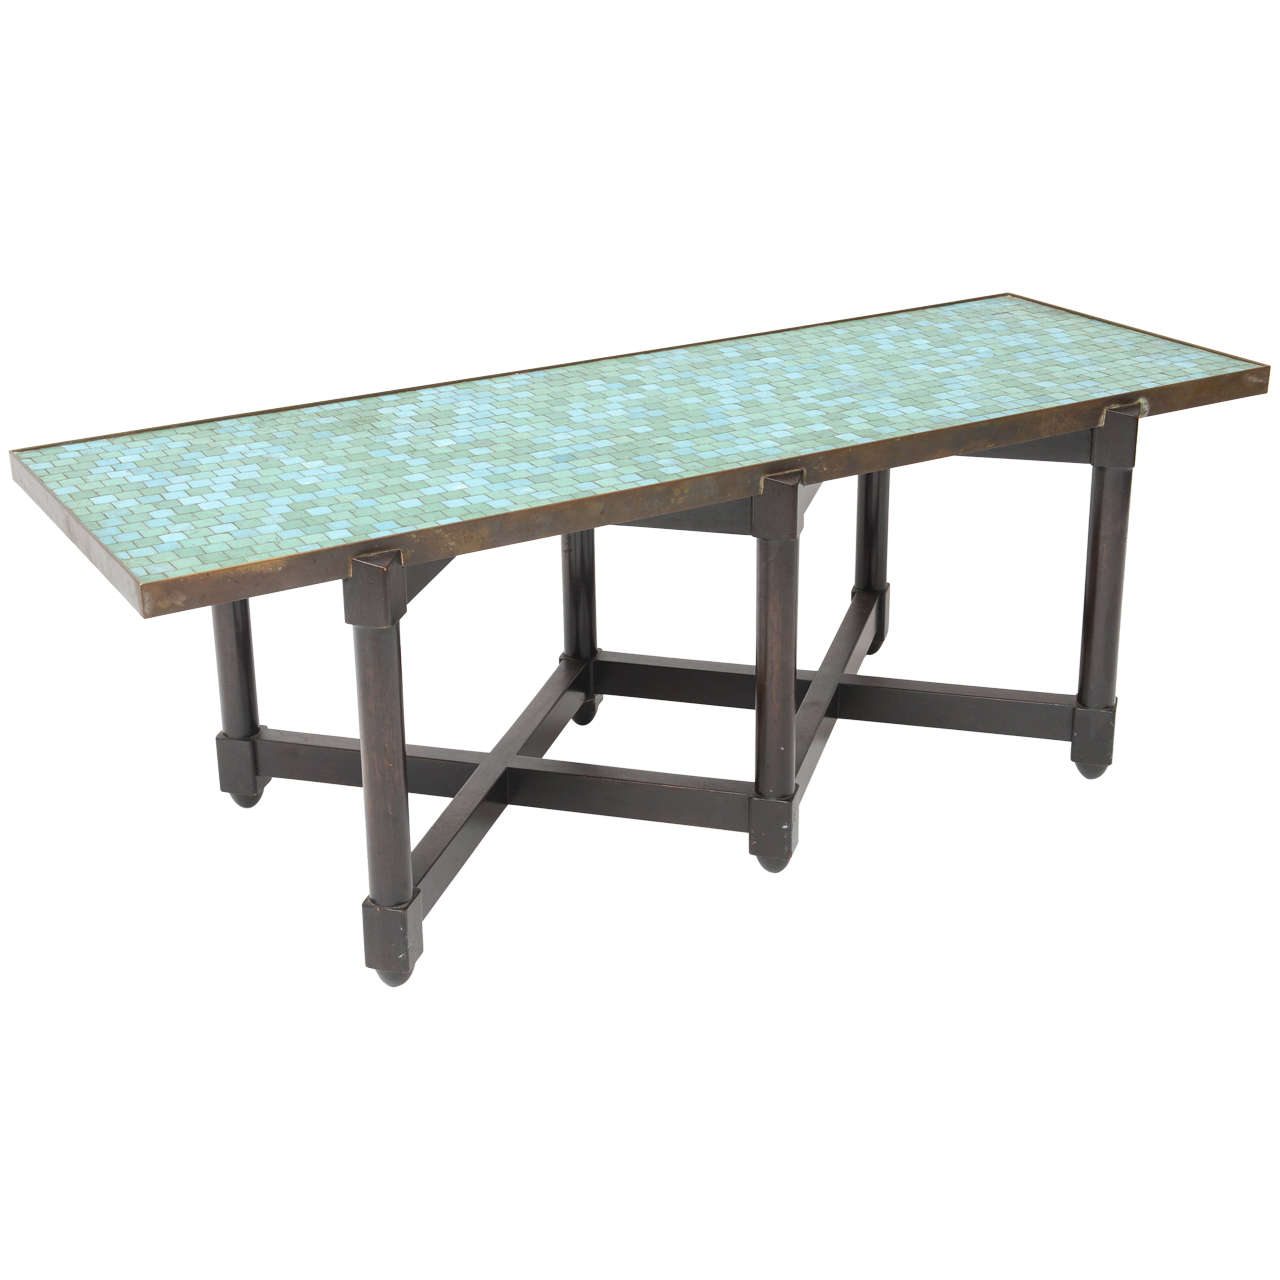 Edward Wormley Tile Top Campaign Coffee Table 1